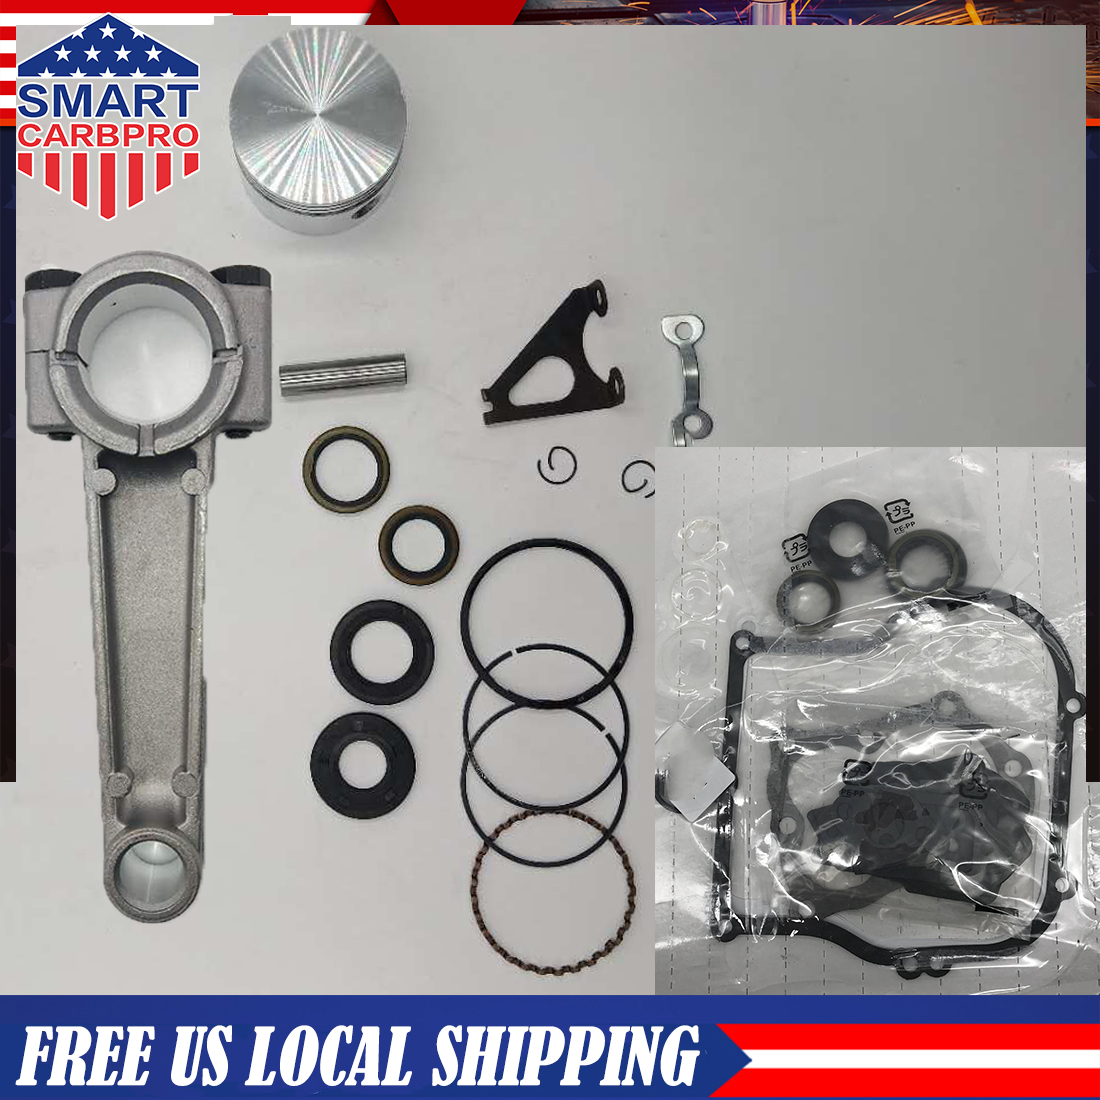 New Engine Rebuild Kit For Briggs and Stratton 5HP Engines Piston Standard